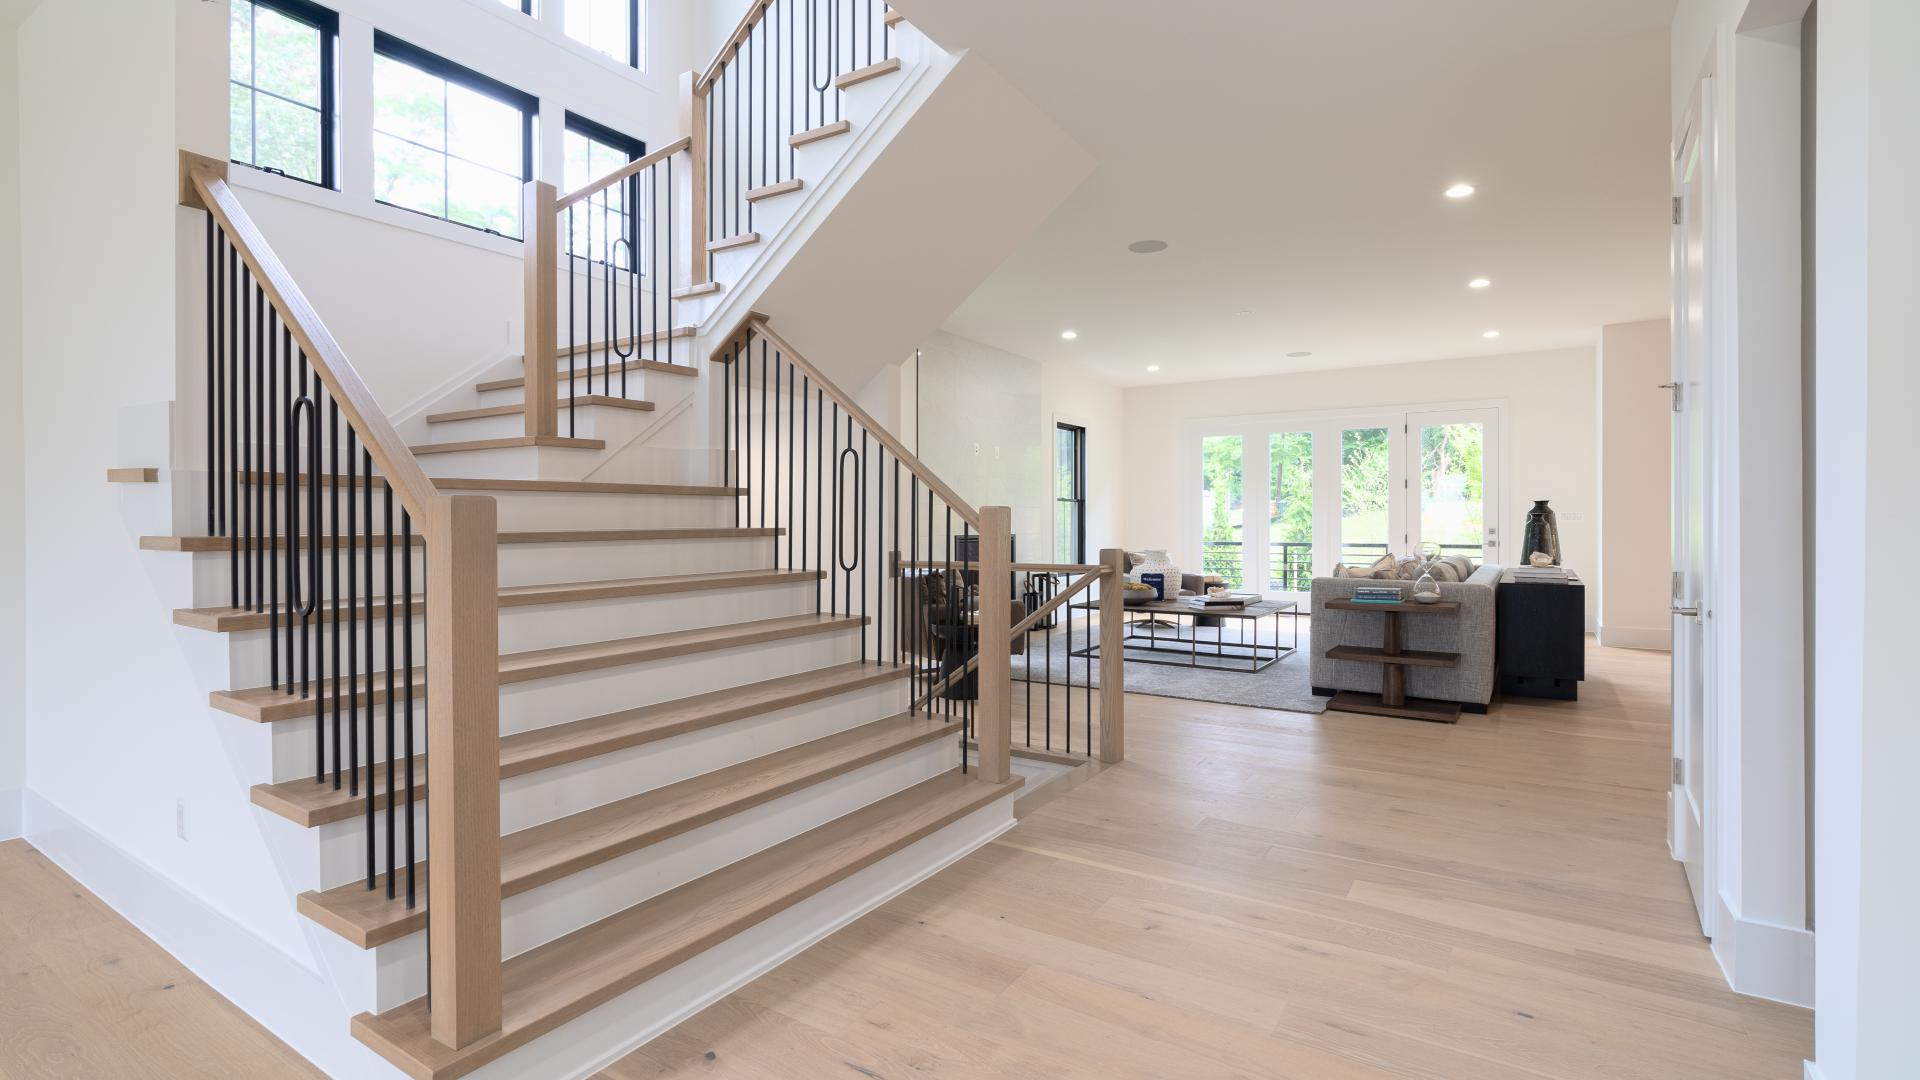 Welcoming foyer entrance with views of sprawling main level, highlighting the open main staircase with abundance of windows